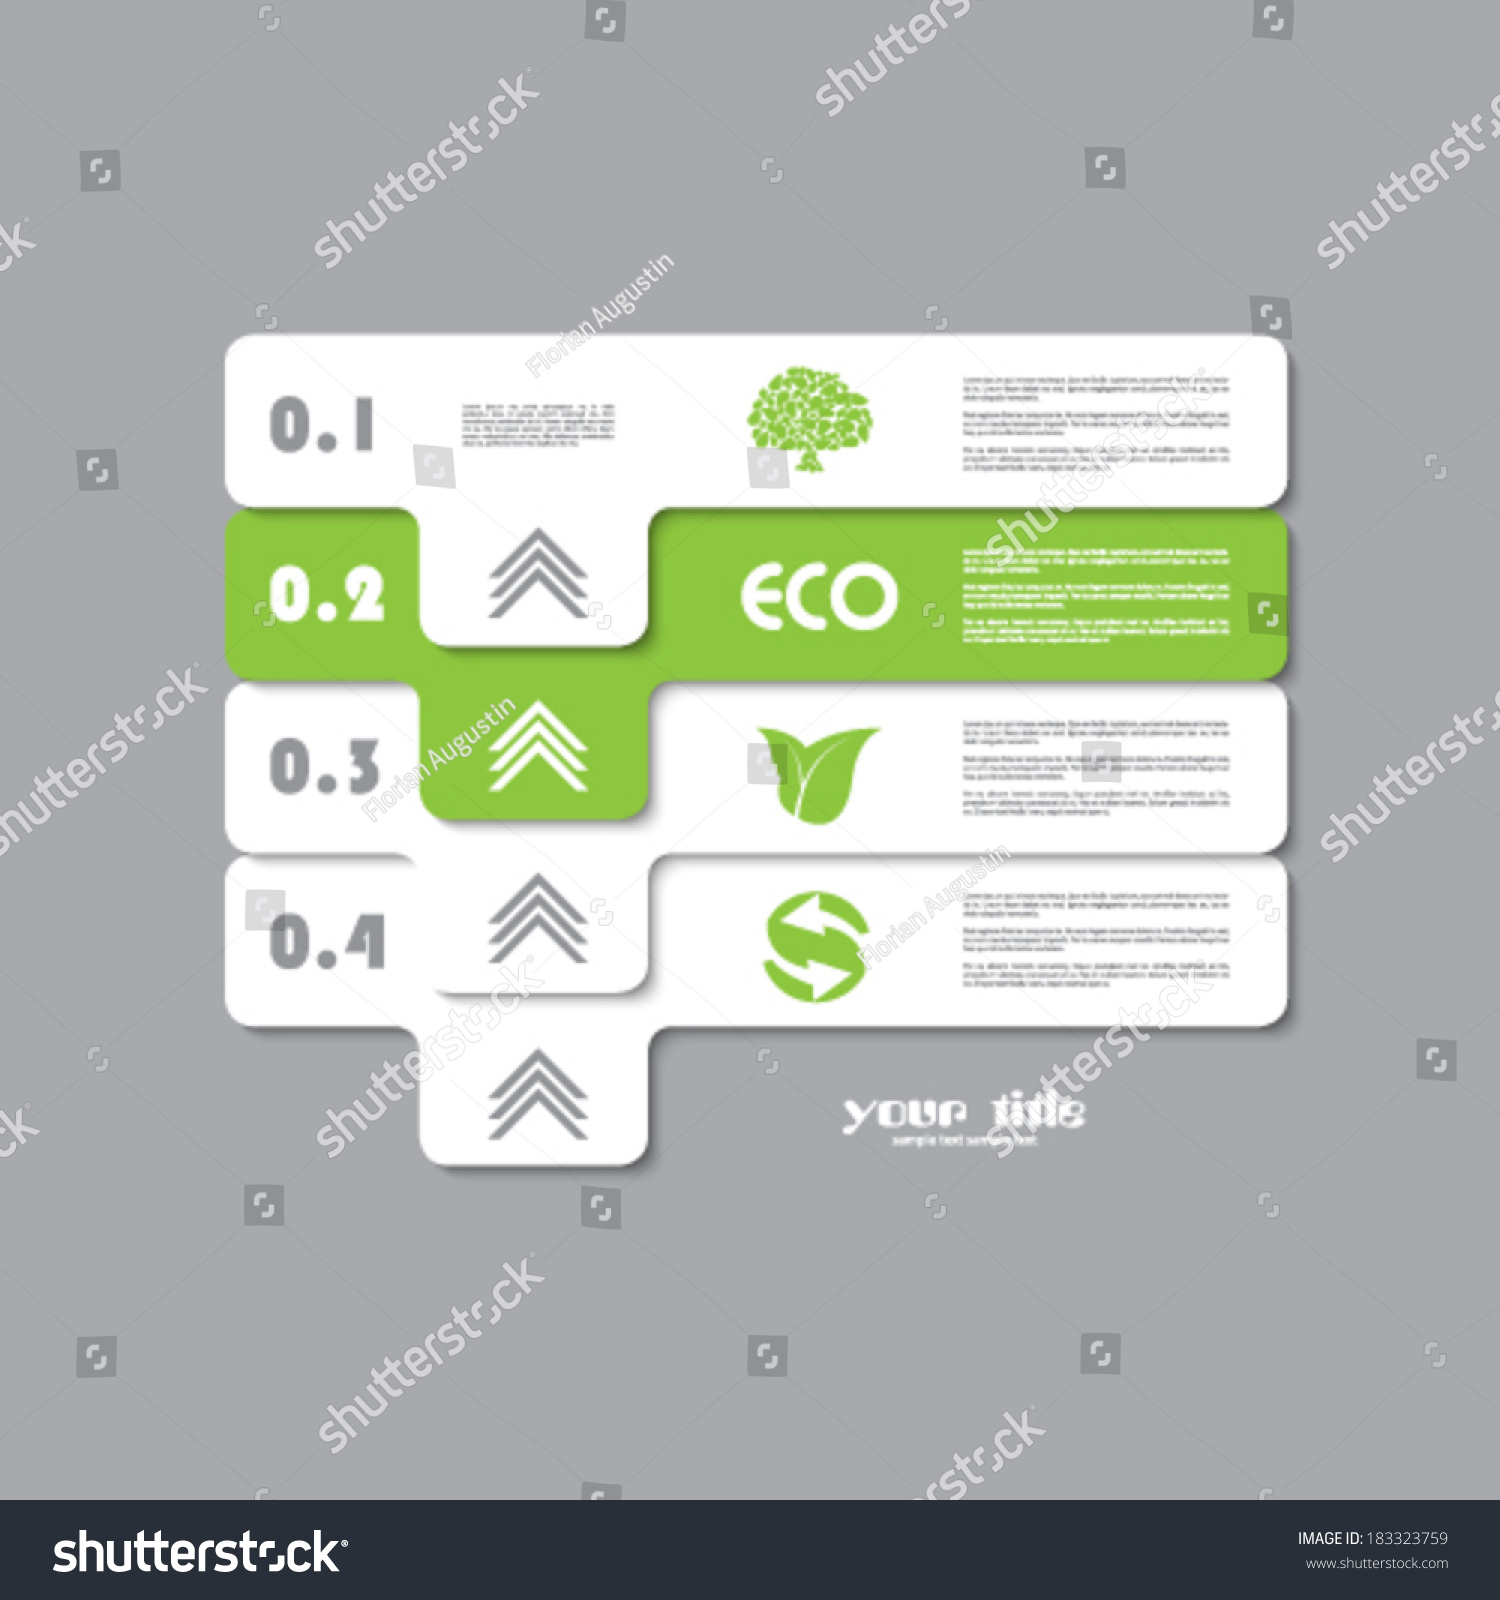 Green Ecology Infographic Vector Signs Stock Vector. Medicare Supplement Plan Ratings. Fox Sports Oklahoma Dish Network. Children Day Care Center Life Insurance Global. Chiropractic Schools In Illinois. Lexus Certified Pre Owned Houston. Graphic Designer Qualifications. Sans Web Application Security. Jefferson Dental Clinic Notebooks Vs Laptops